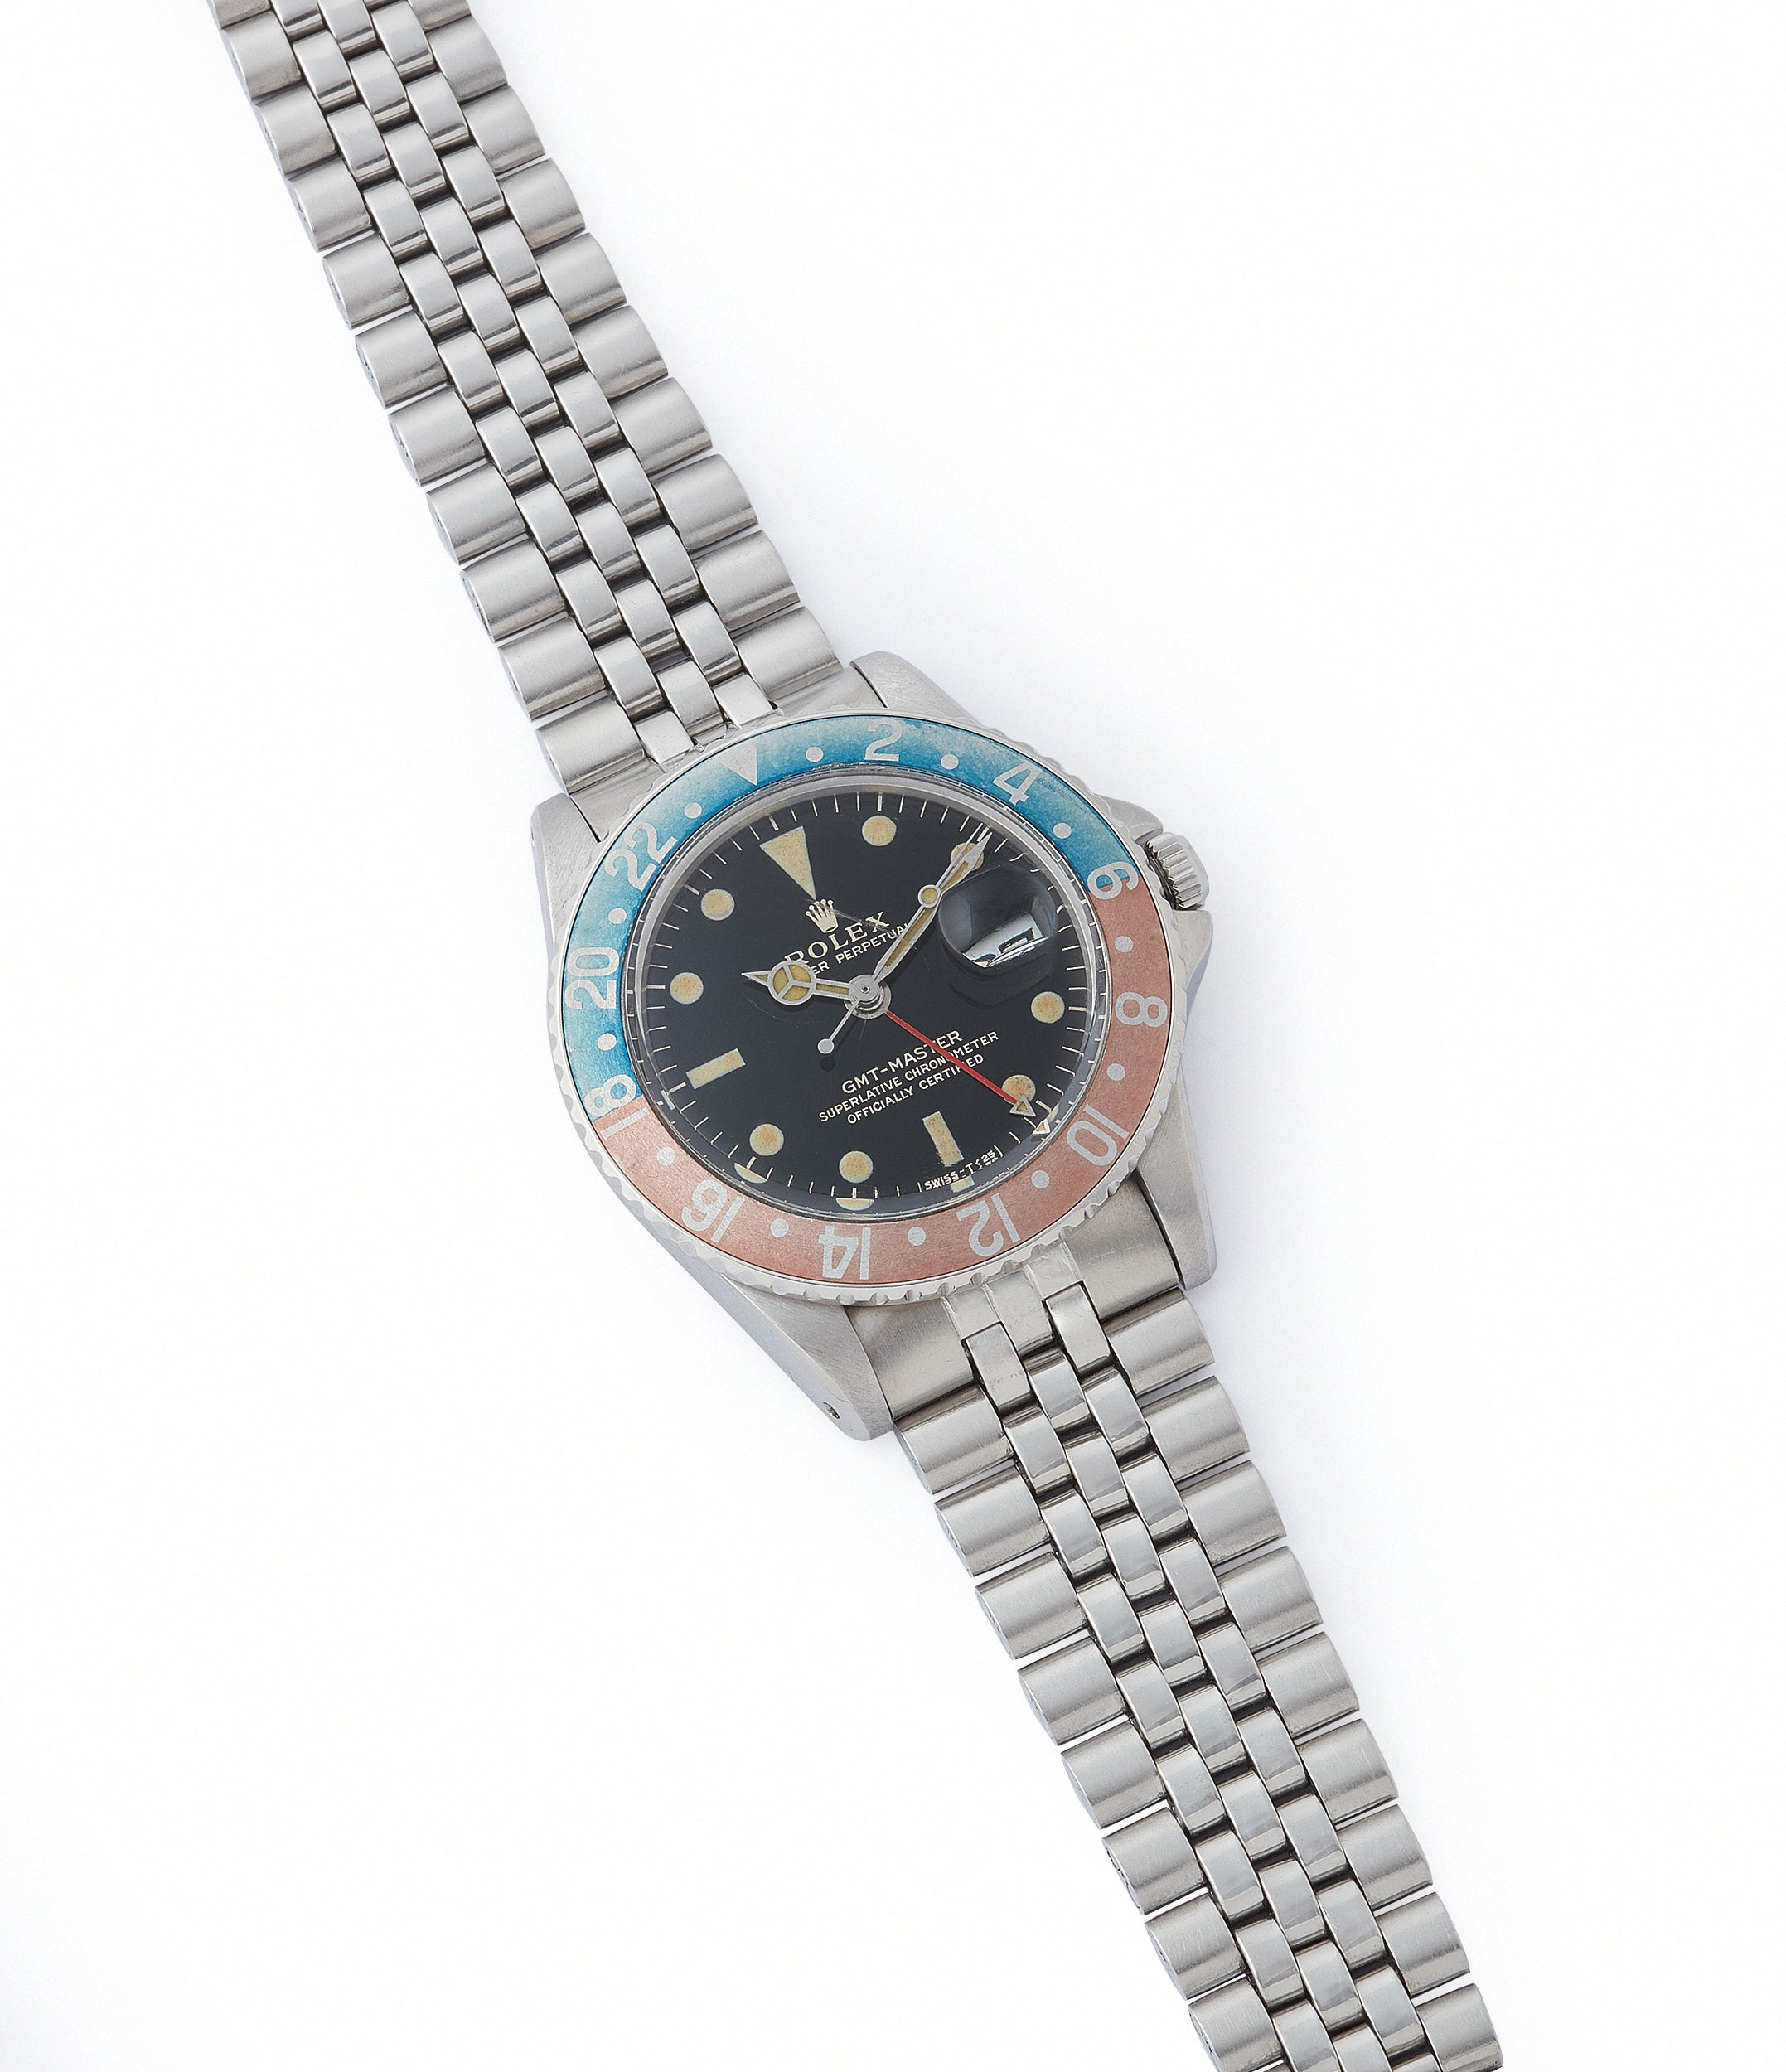 sell vintage Rolex 1675 GMT-Master Pepsi bezel gilt dial rare traveller sport watch for sale online at A Collected Man London UK specialist of vintage watches